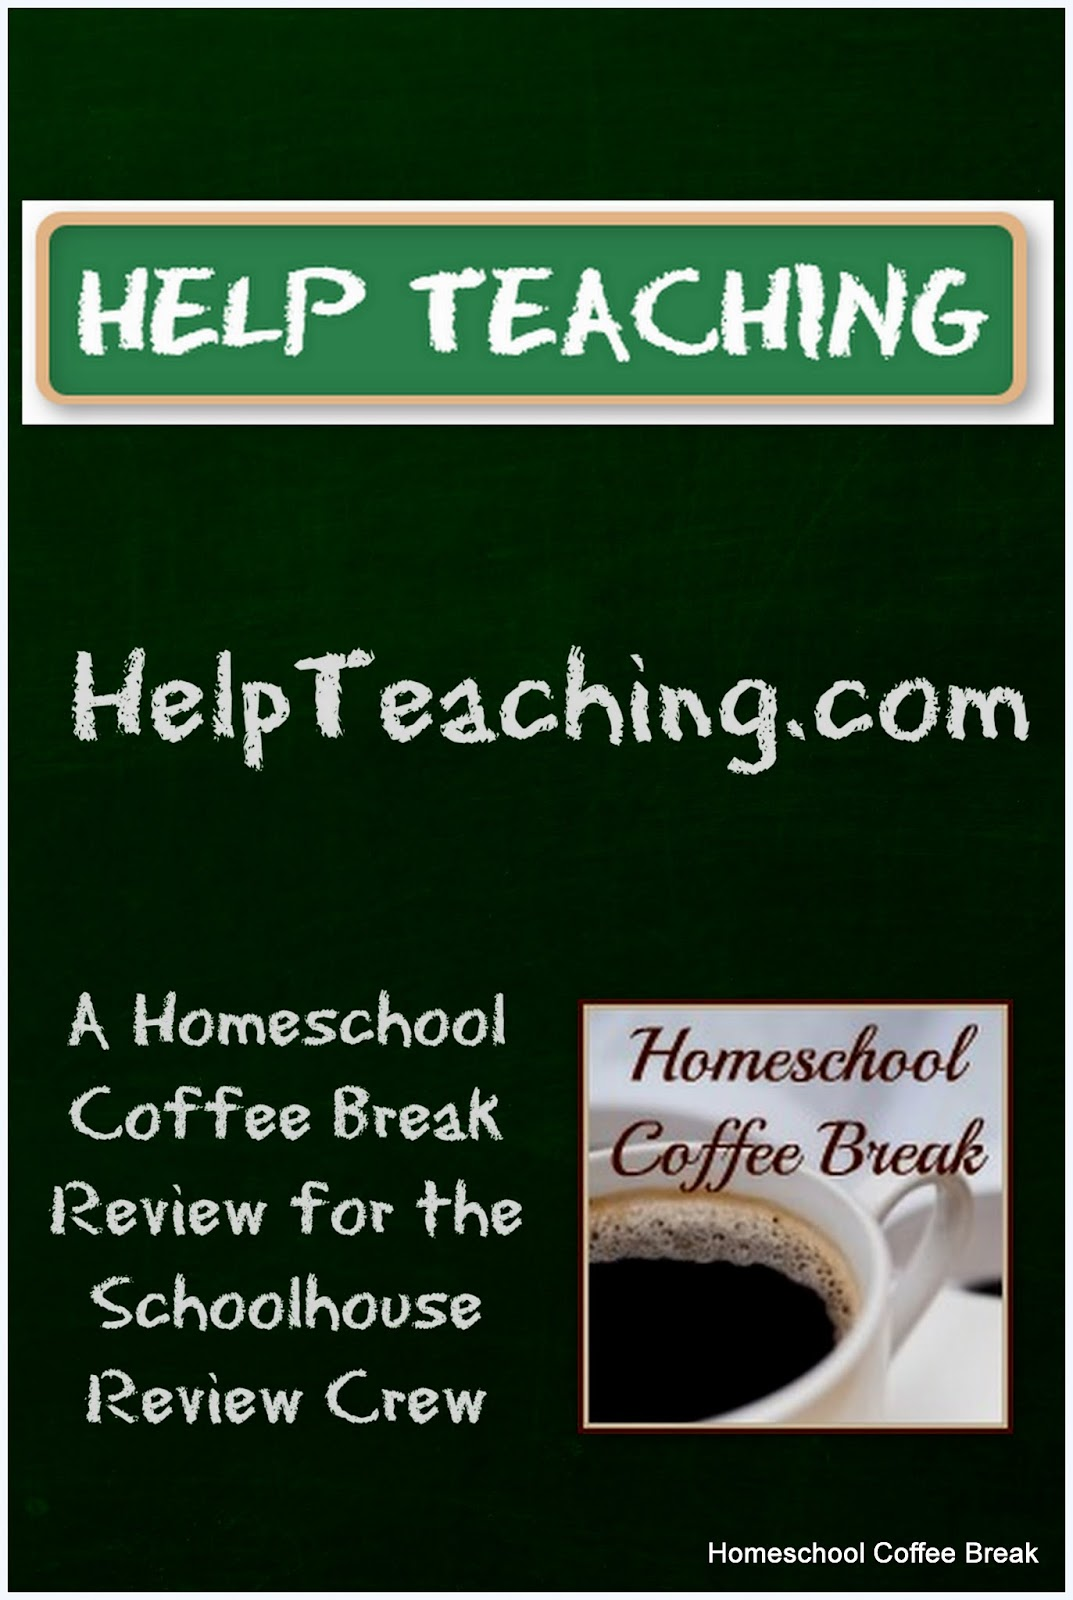 Homeschool Coffee Break Worksheets And Tests From Helpteaching A Schoolhouse Crew Review